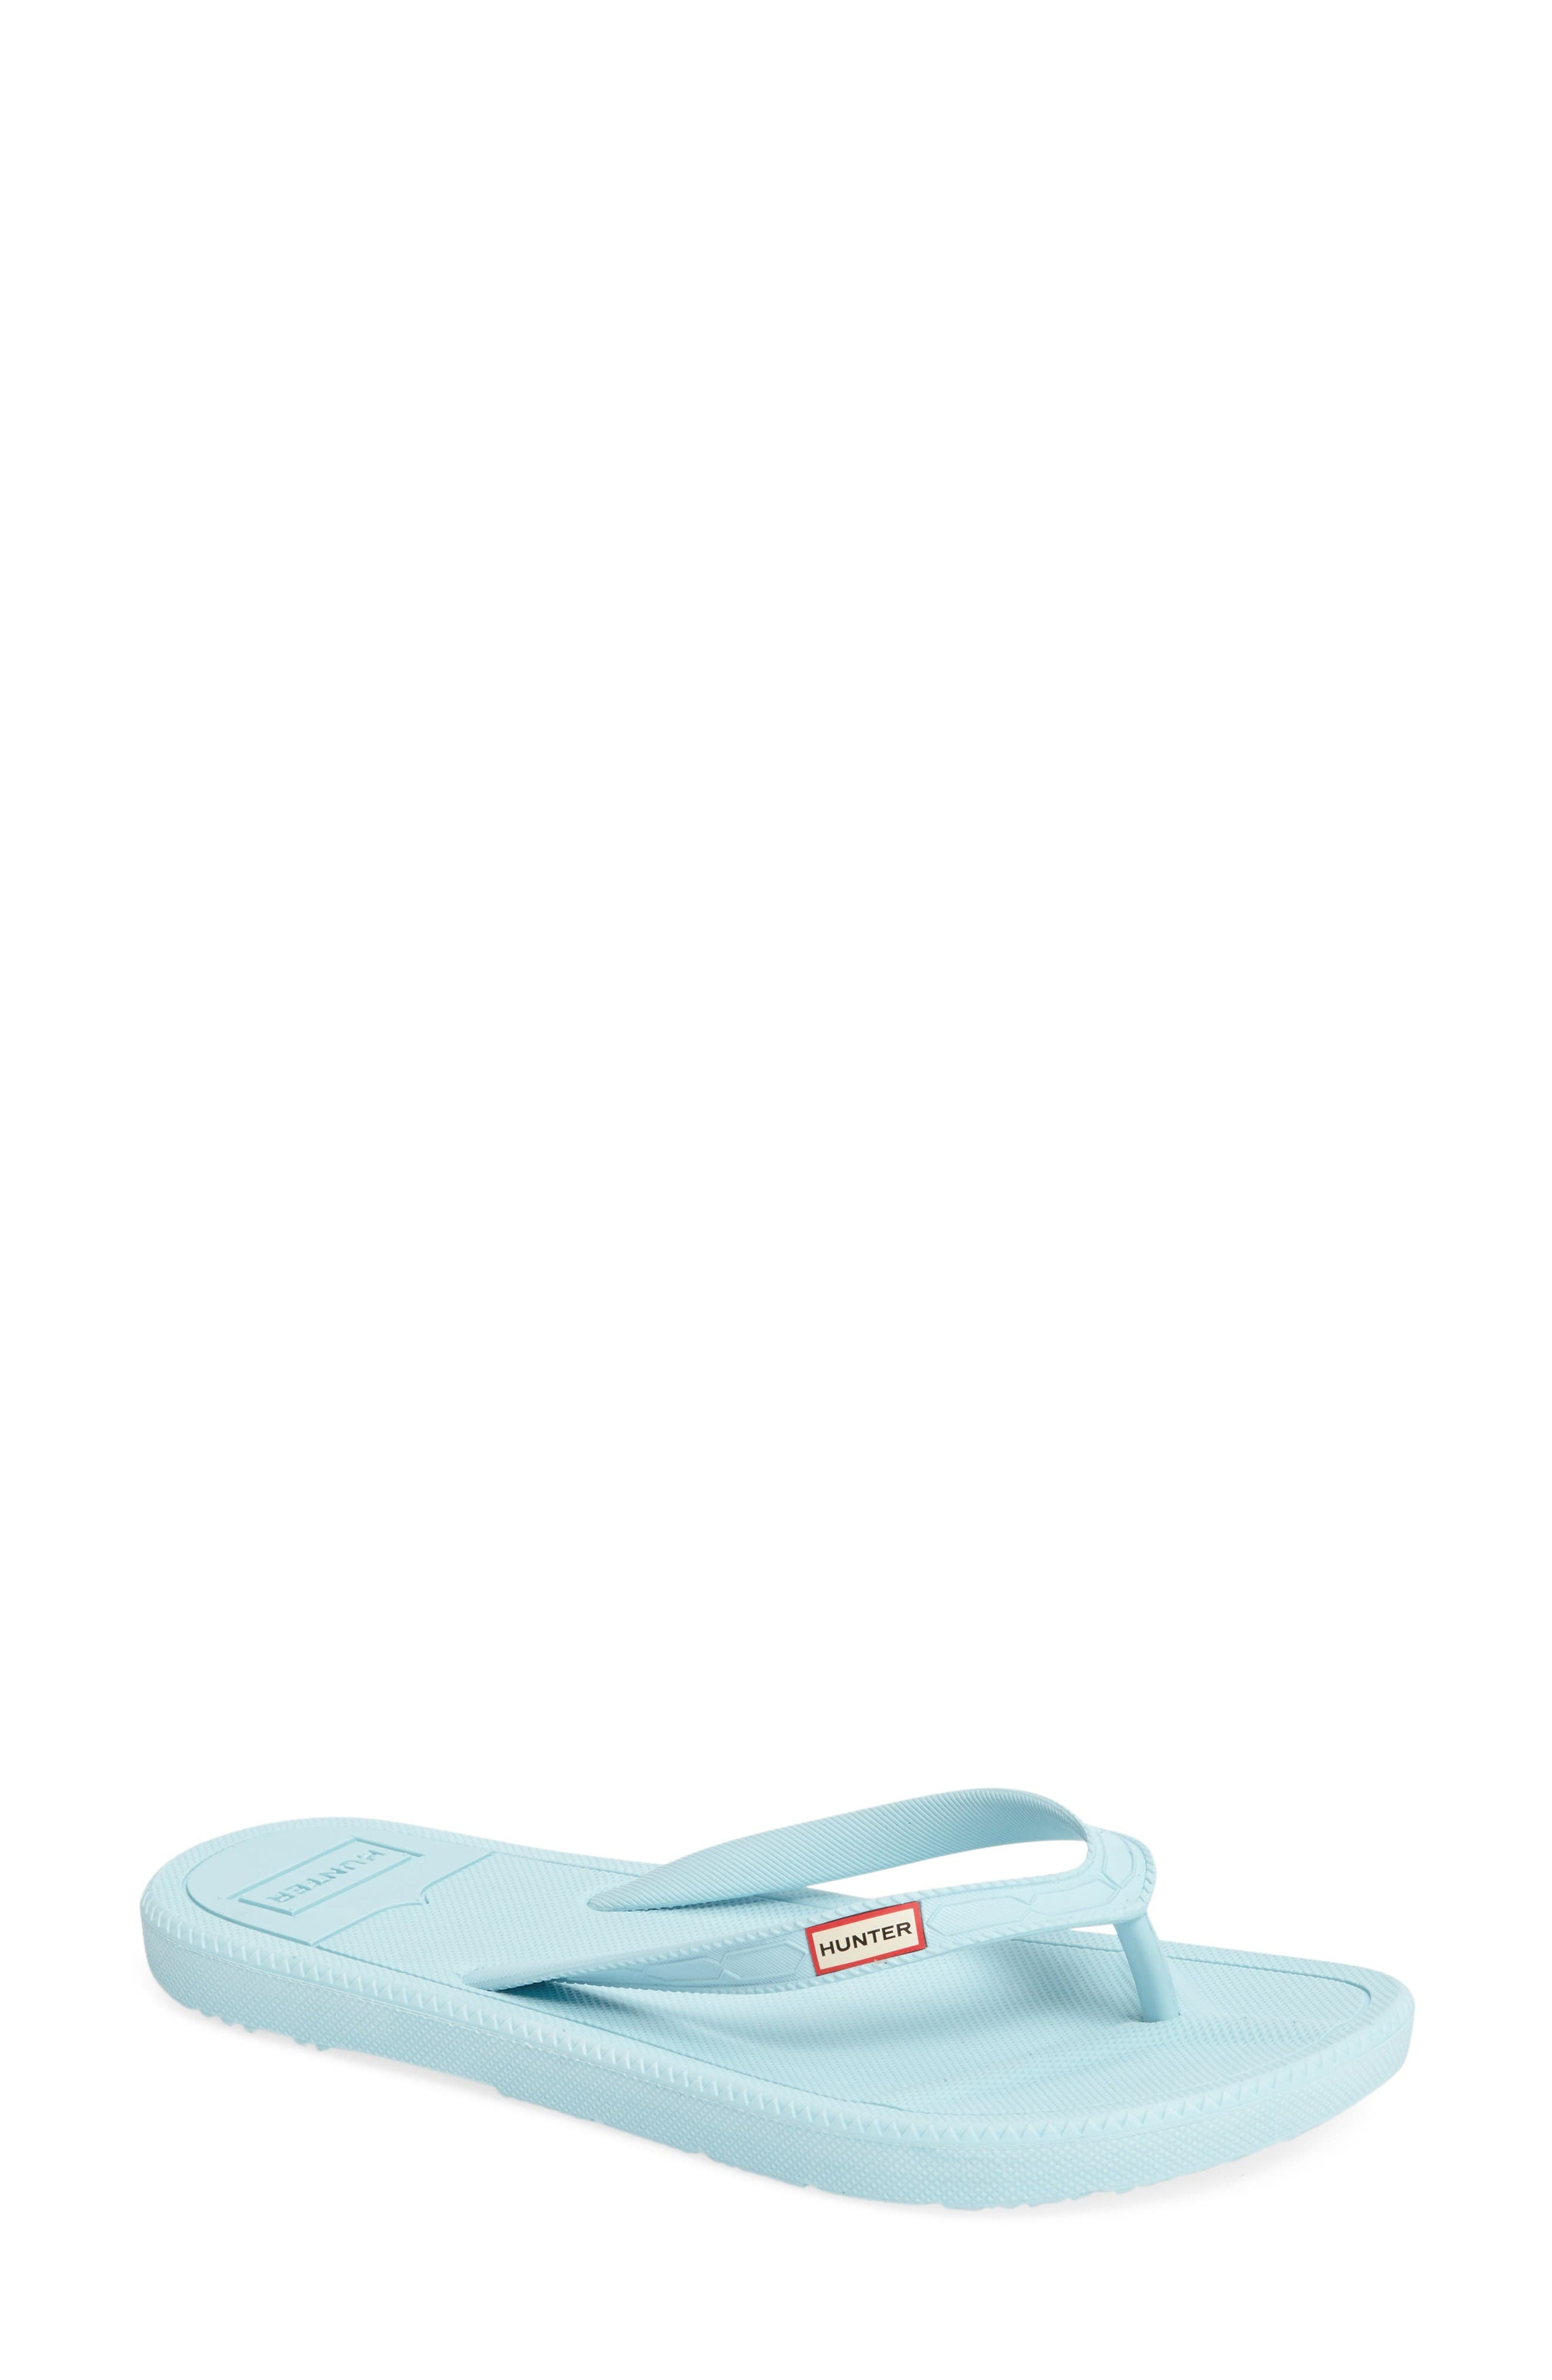 Hunter Original Flip Flop (Women)